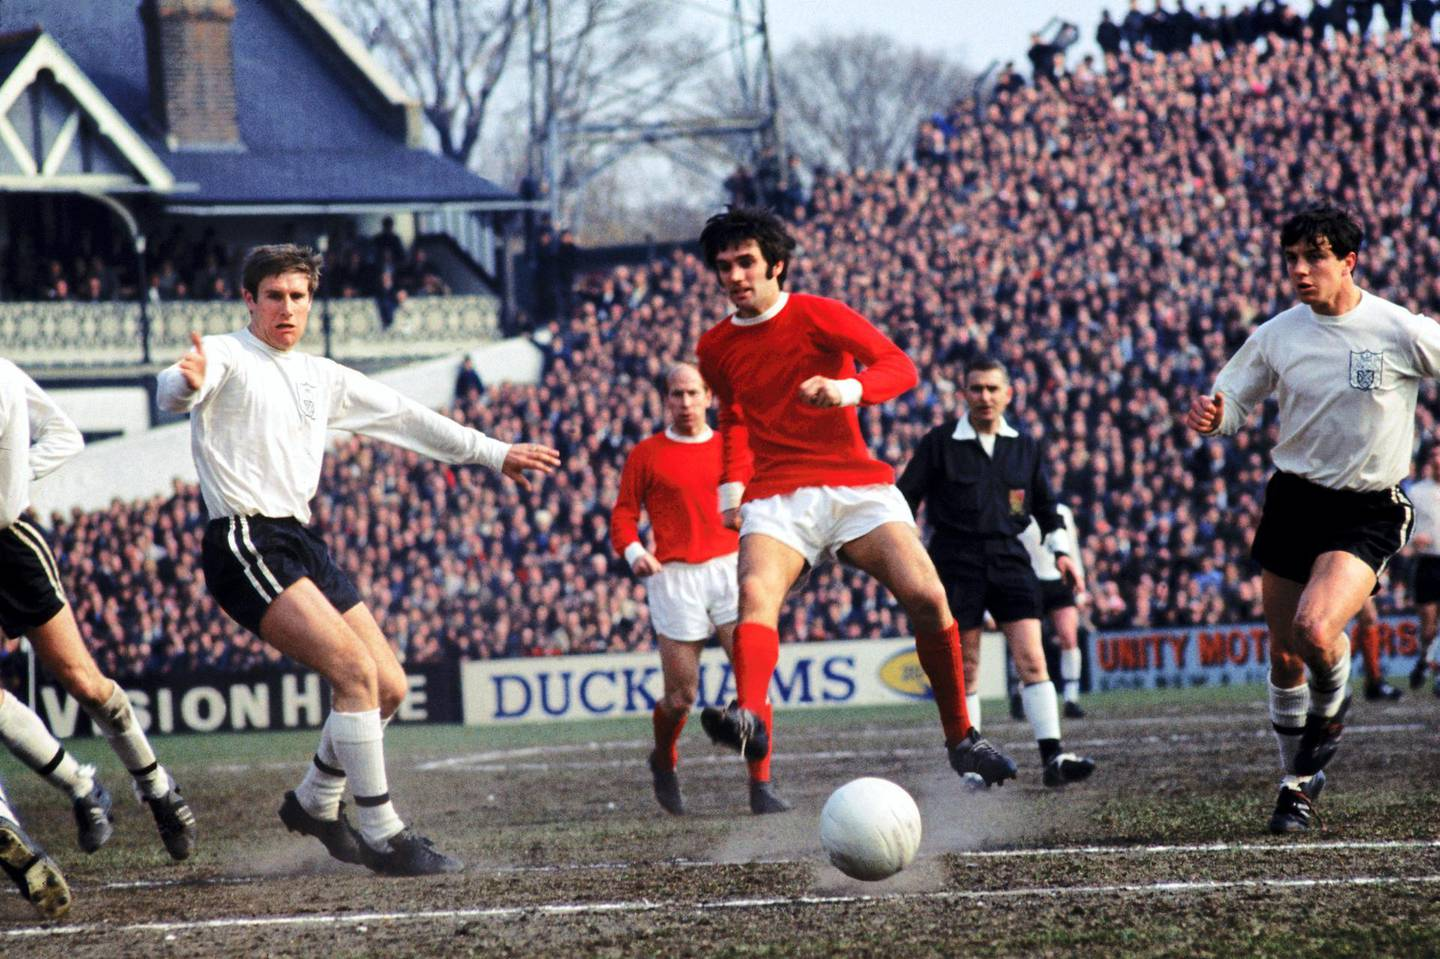 George Best, Manchester United in action against FulhamNo Use UK. No Use Ireland. No Use Belgium. No Use France. No Use Germany. No Use Japan. No Use China. No Use Norway. No Use Sweden. No Use Denmark. No Use Holland